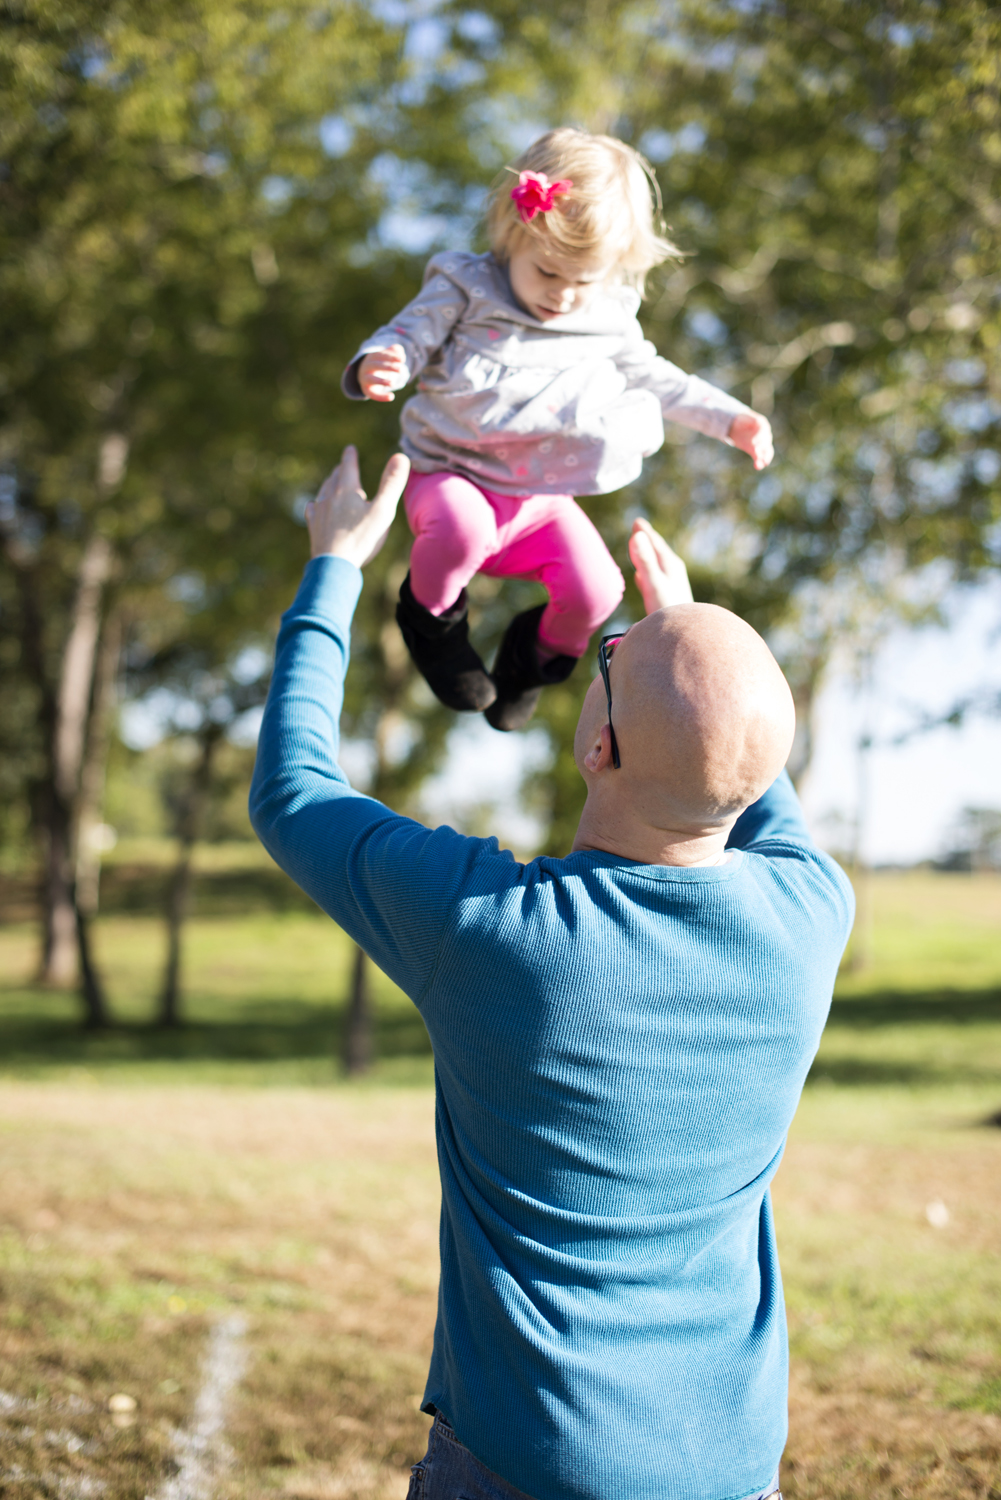 Dad throwing his daughter into the air